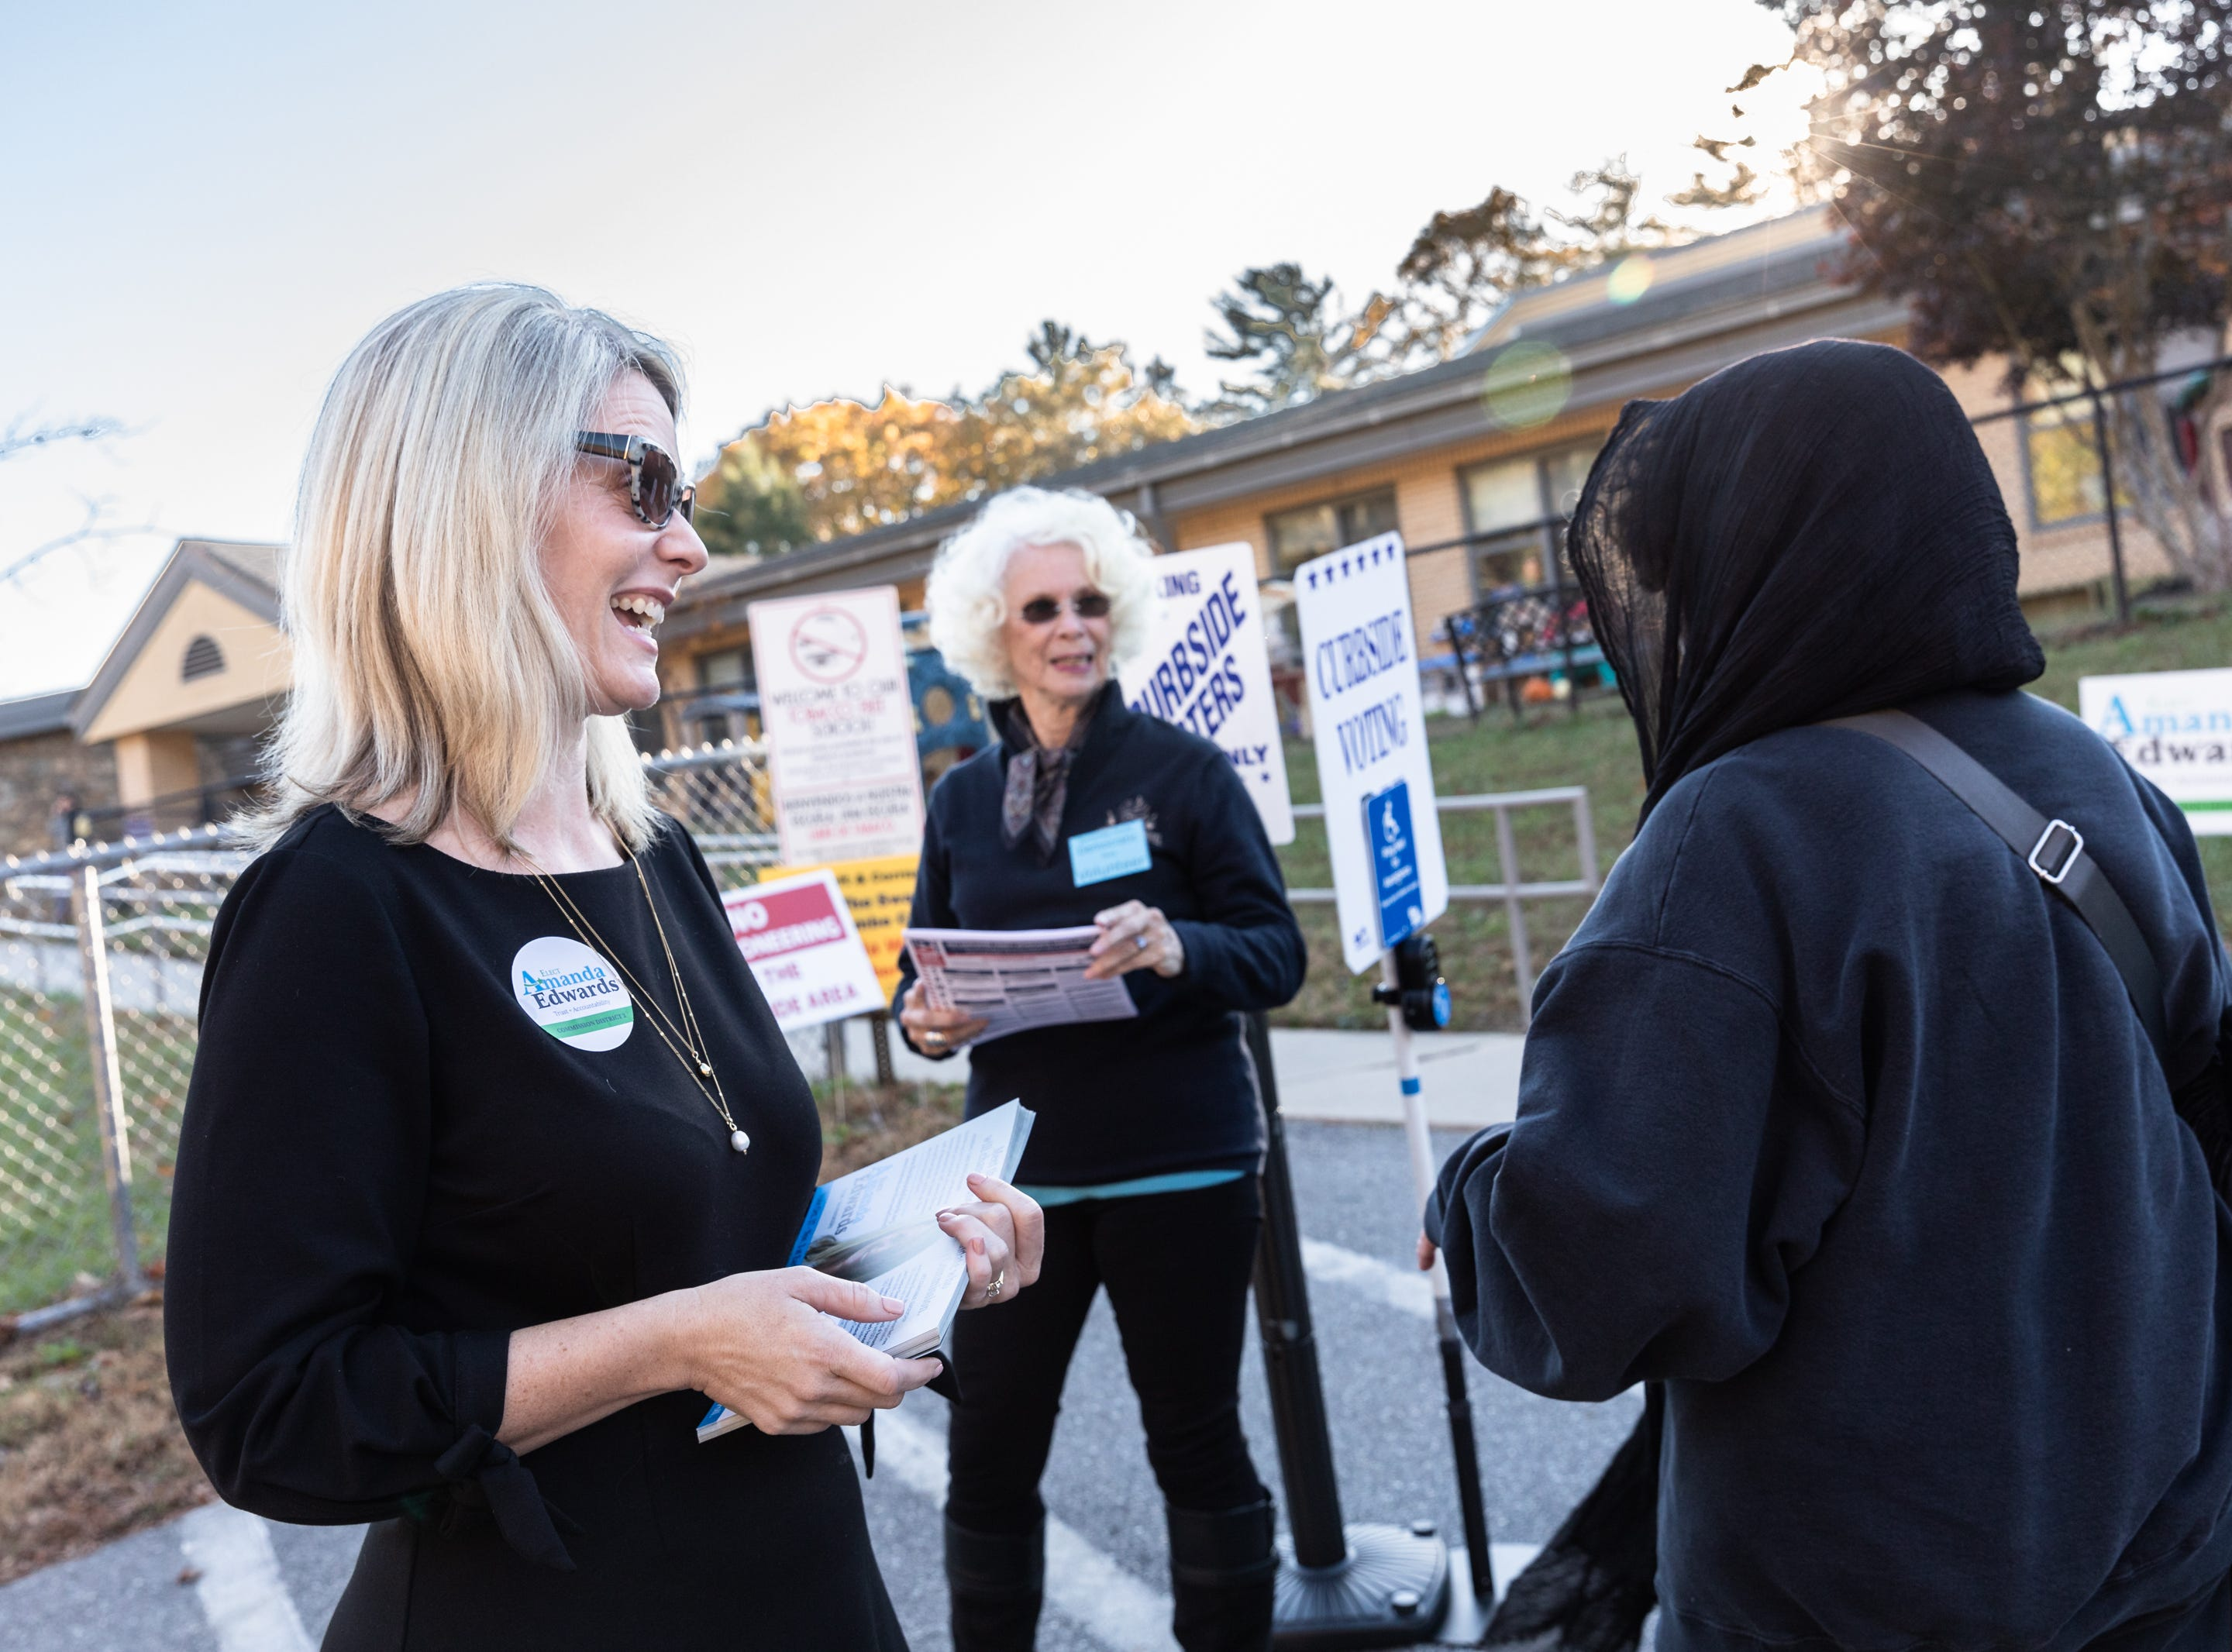 Amanda Edwards, Democratic candidate for the district 2 Buncombe County Commission, talks with a voter at Ira B. Jones elementary school, one of the midterm election voting sites, Nov. 6, 2018.